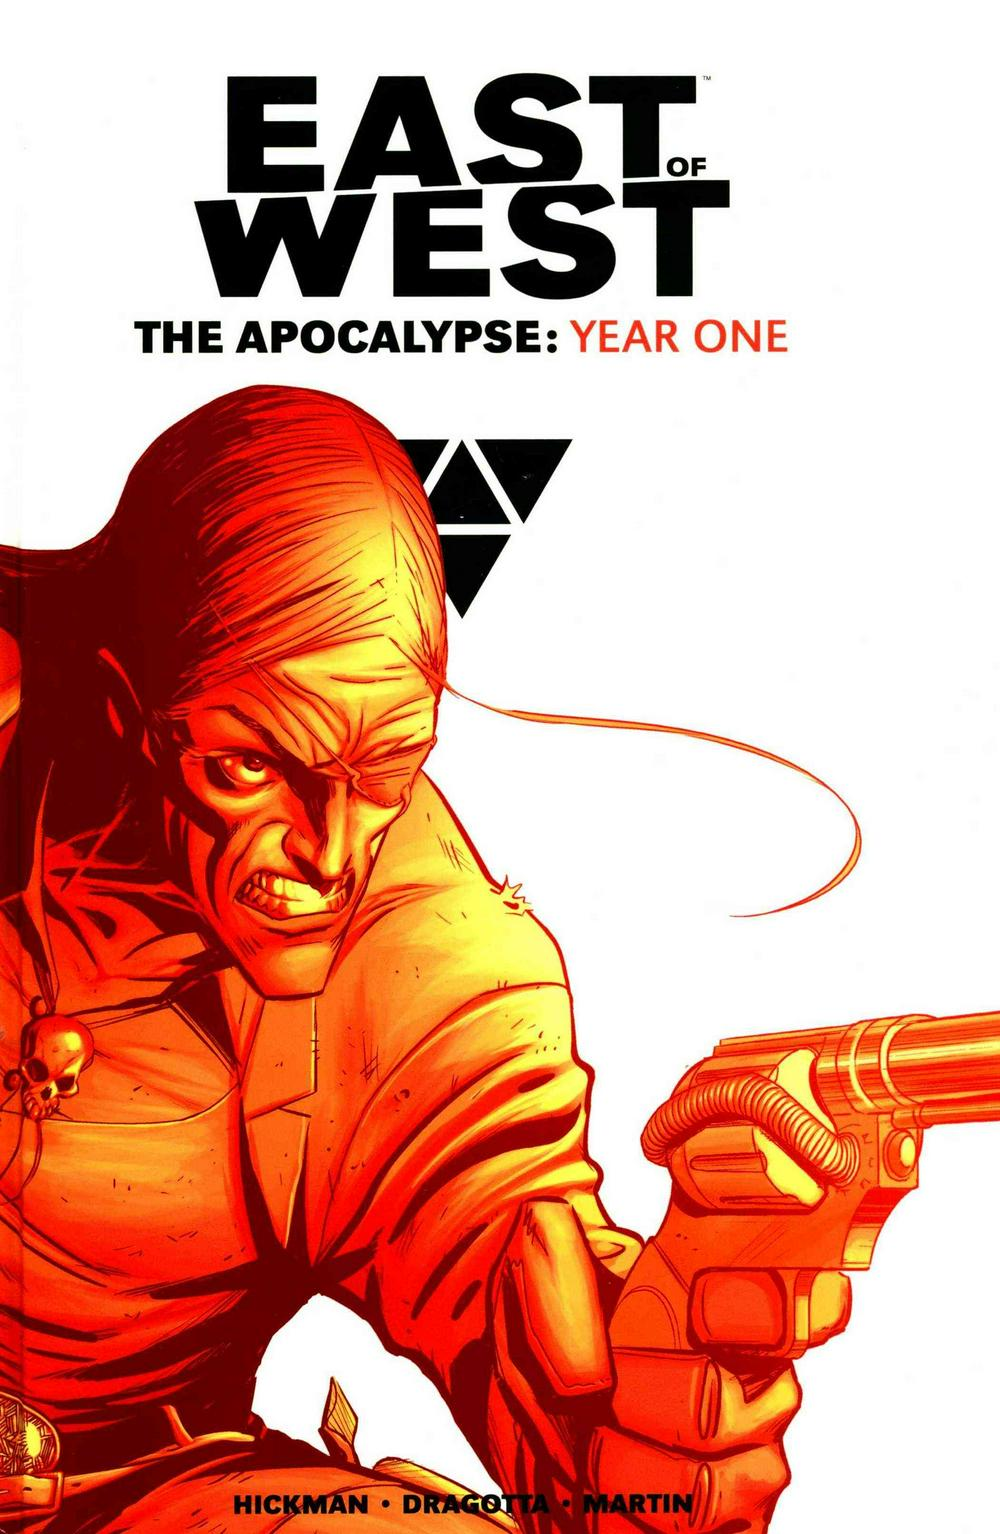 East of West the ApocalypseYear One by Jonathan Hickman,Nick Dragotta, ISBN: 9781632154309